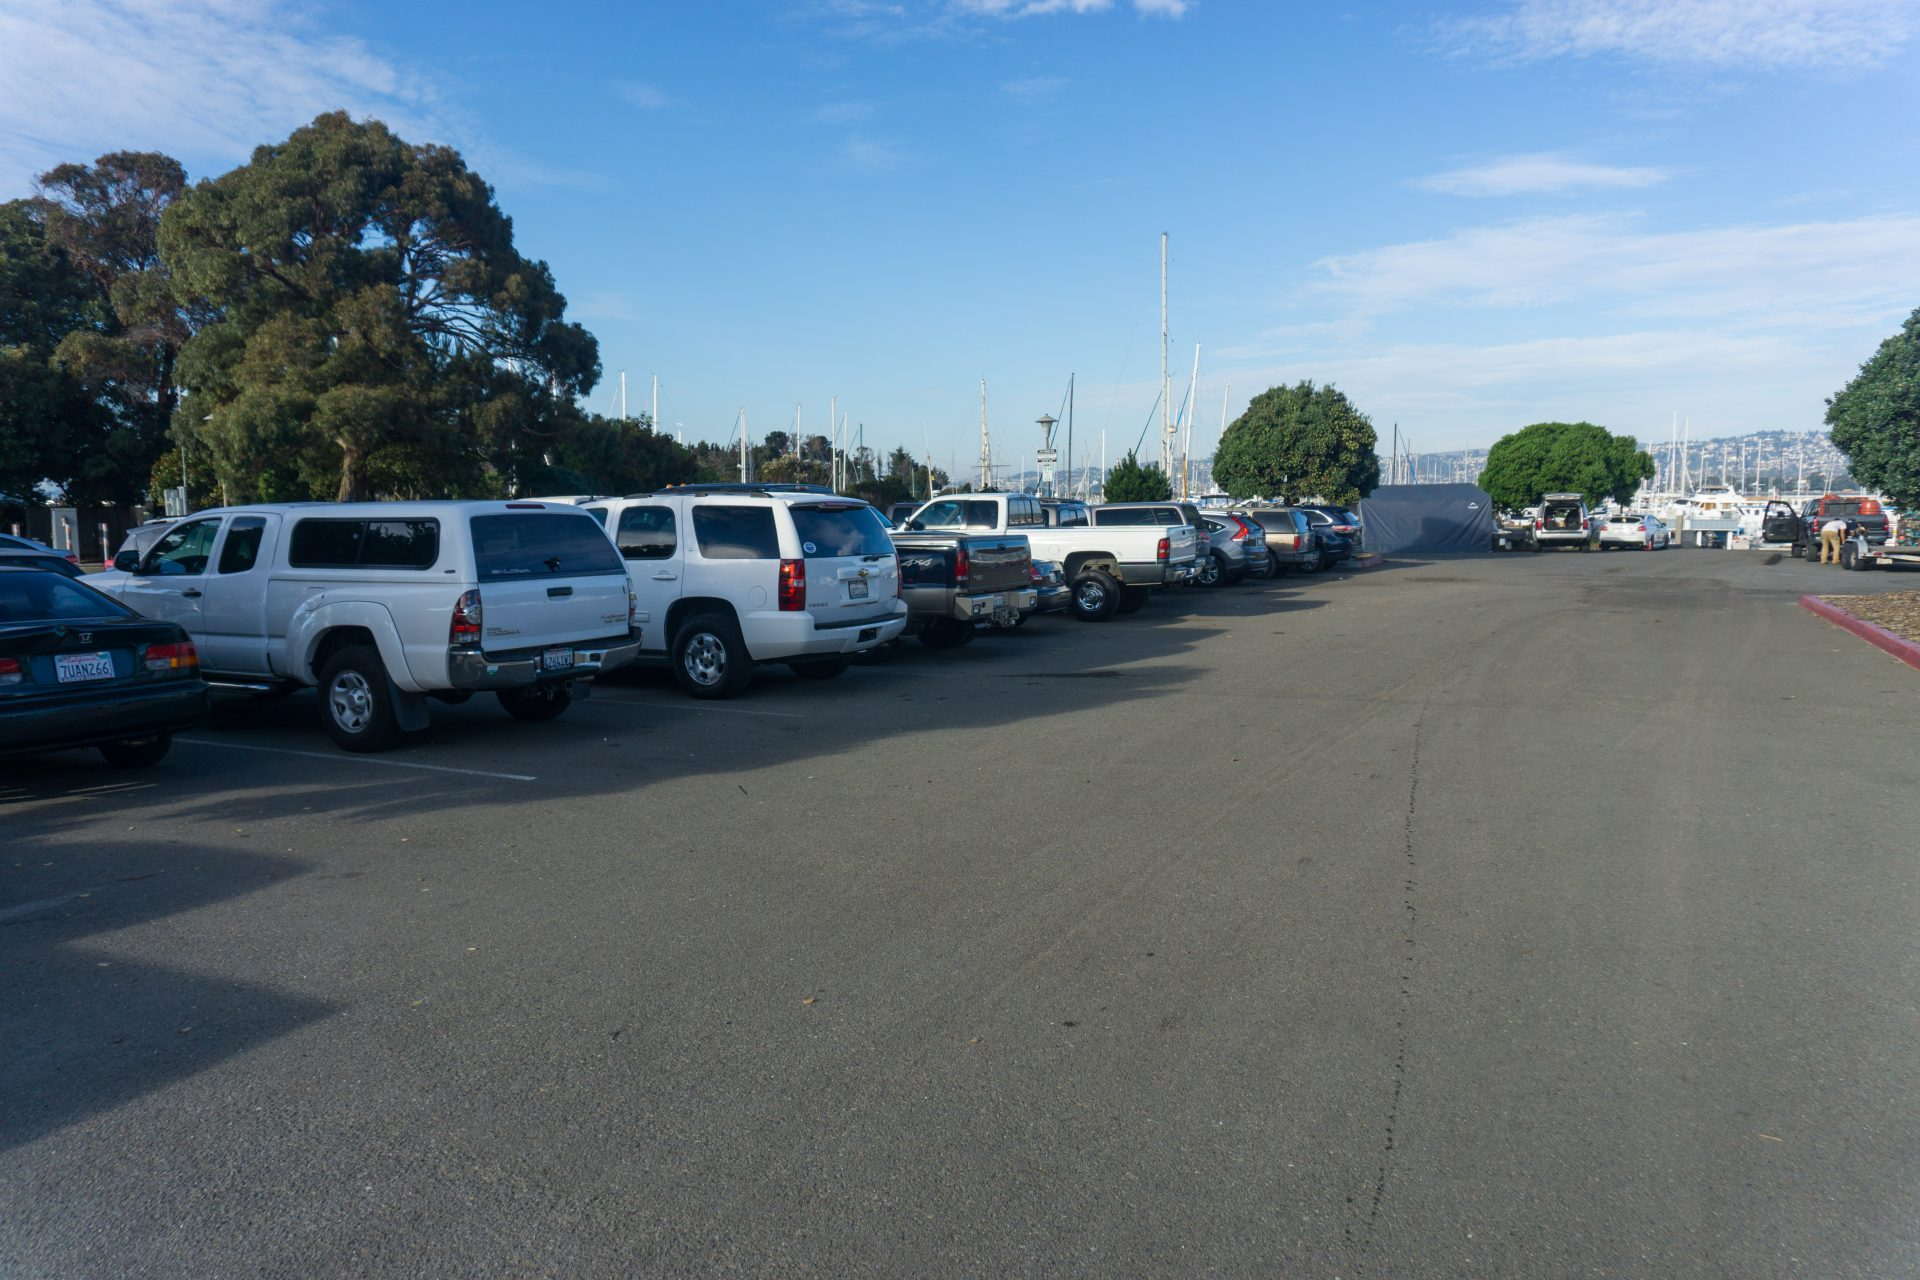 Parking lot full of mostly pickup trucks and SUVs